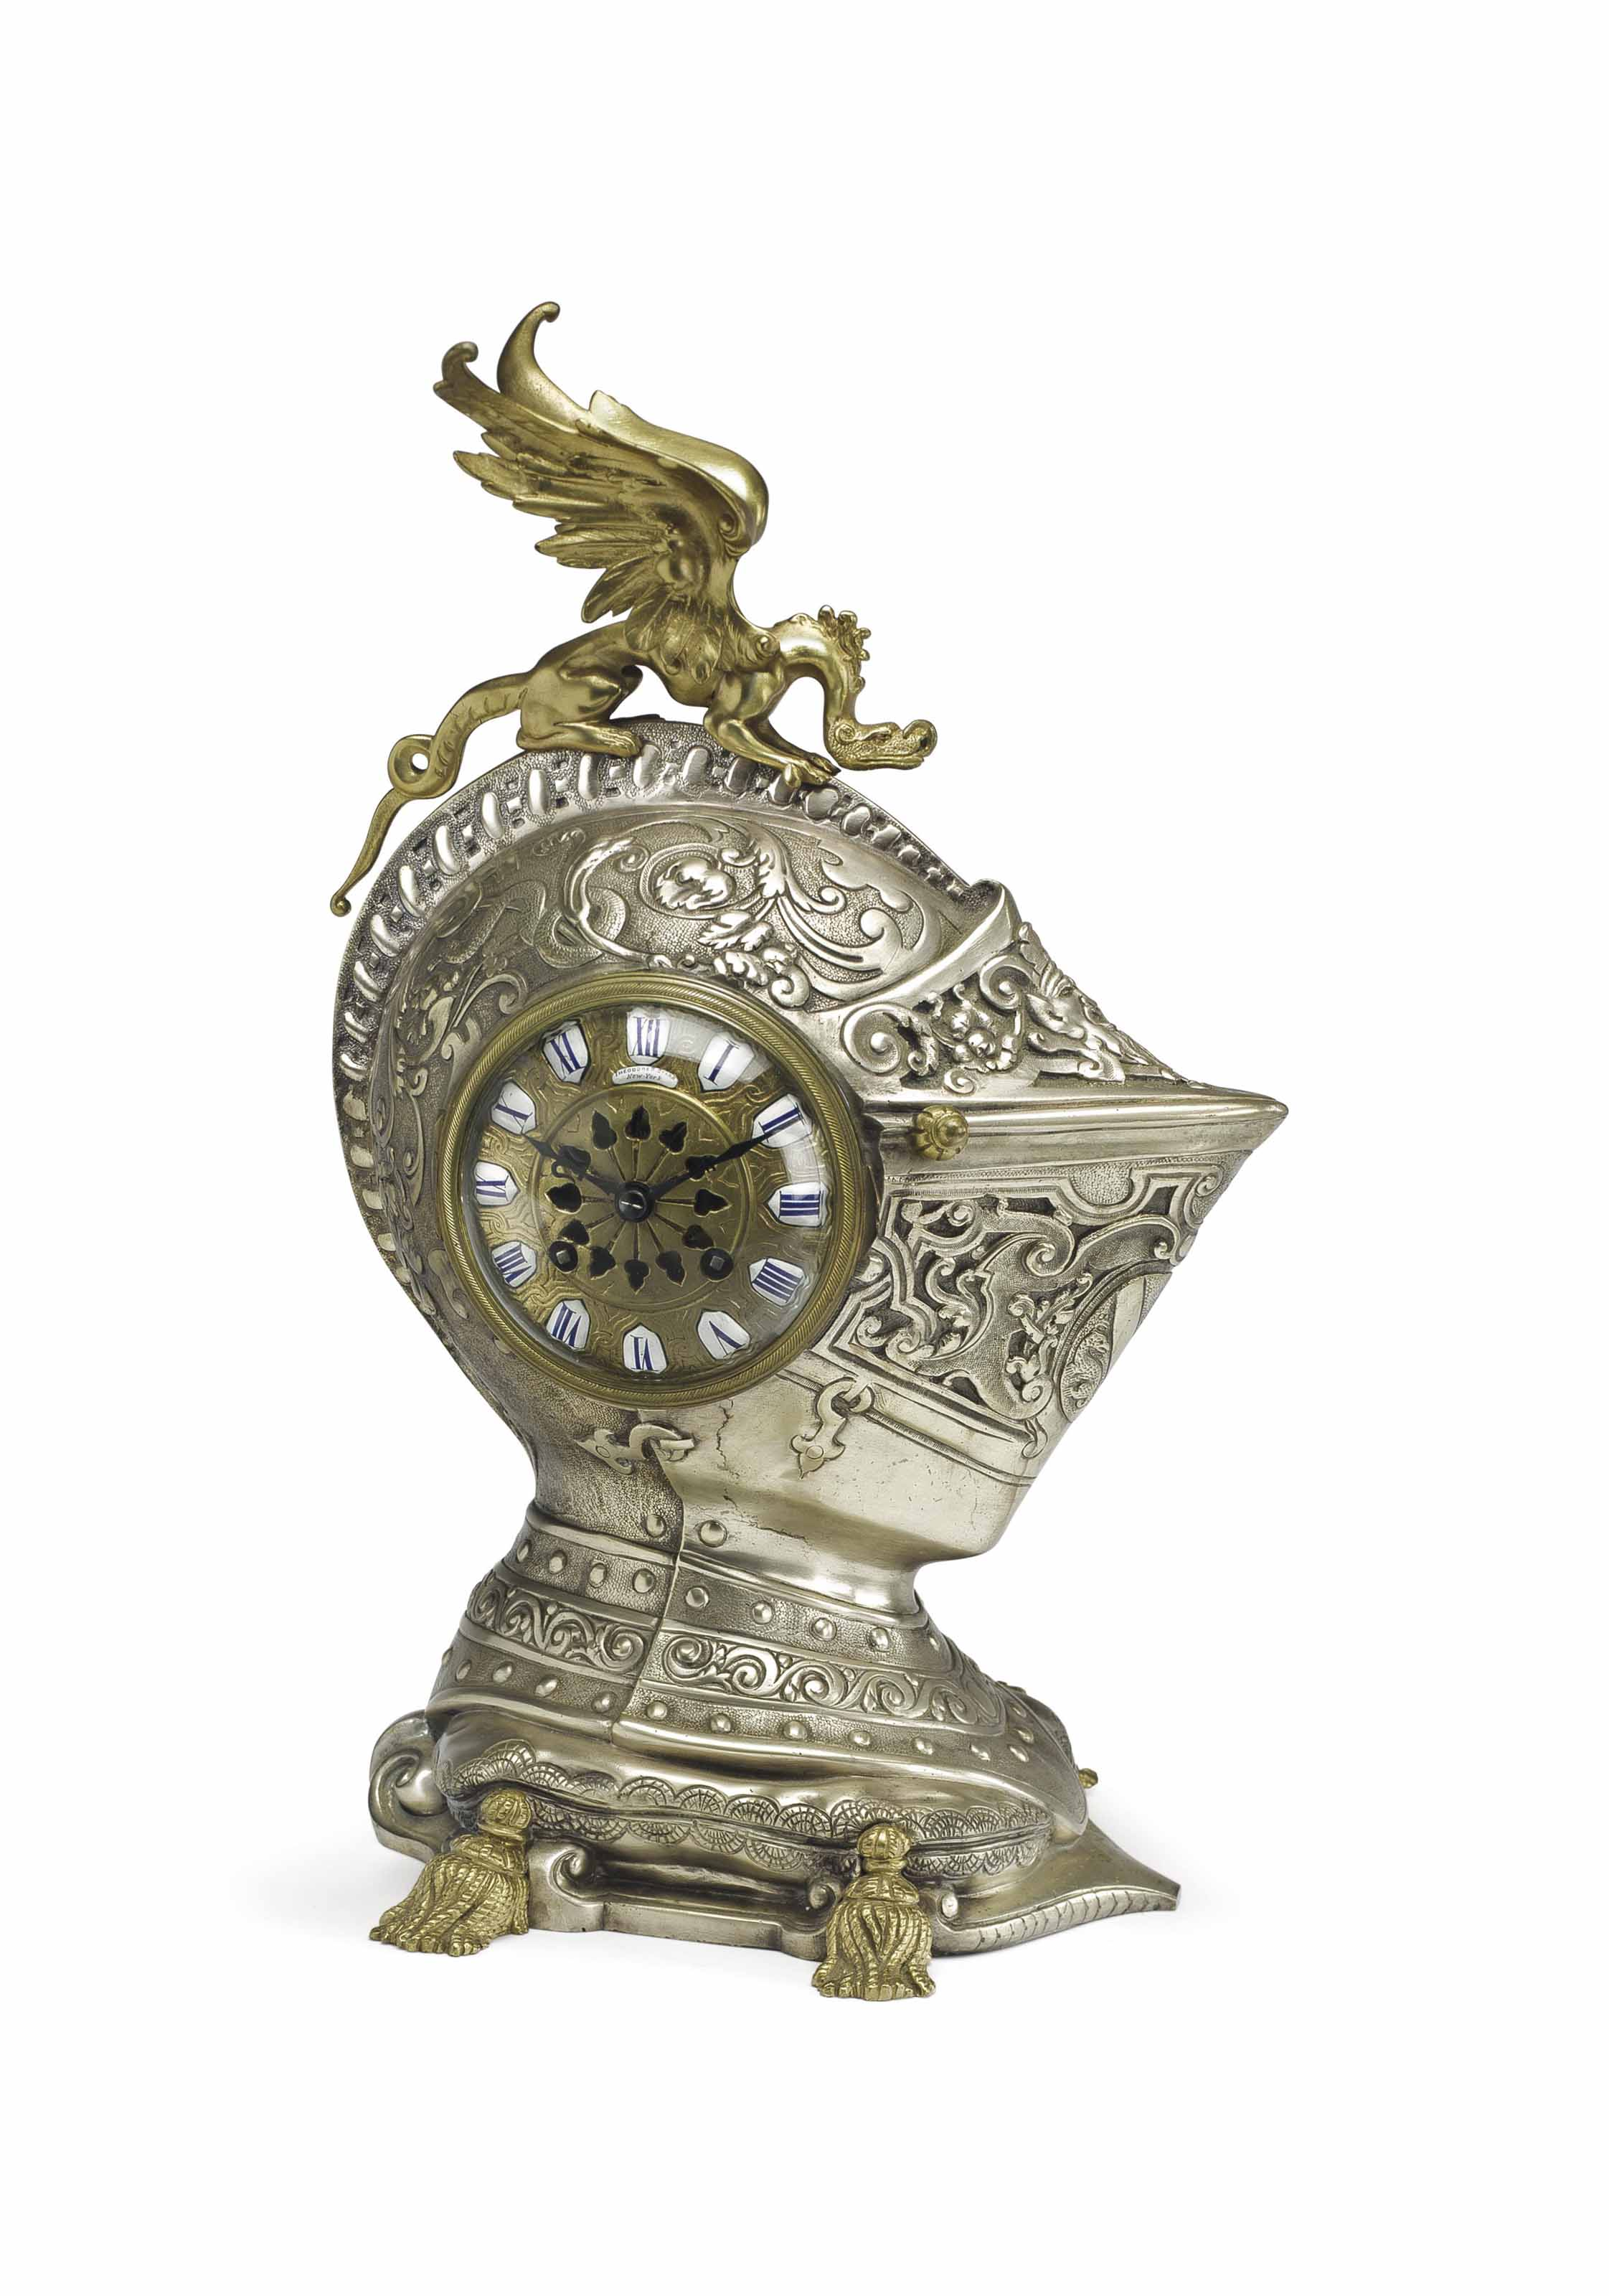 Japy Freres. A Silver-Plated Brass Striking Mantle Clock in the Form of a Knights Helmut